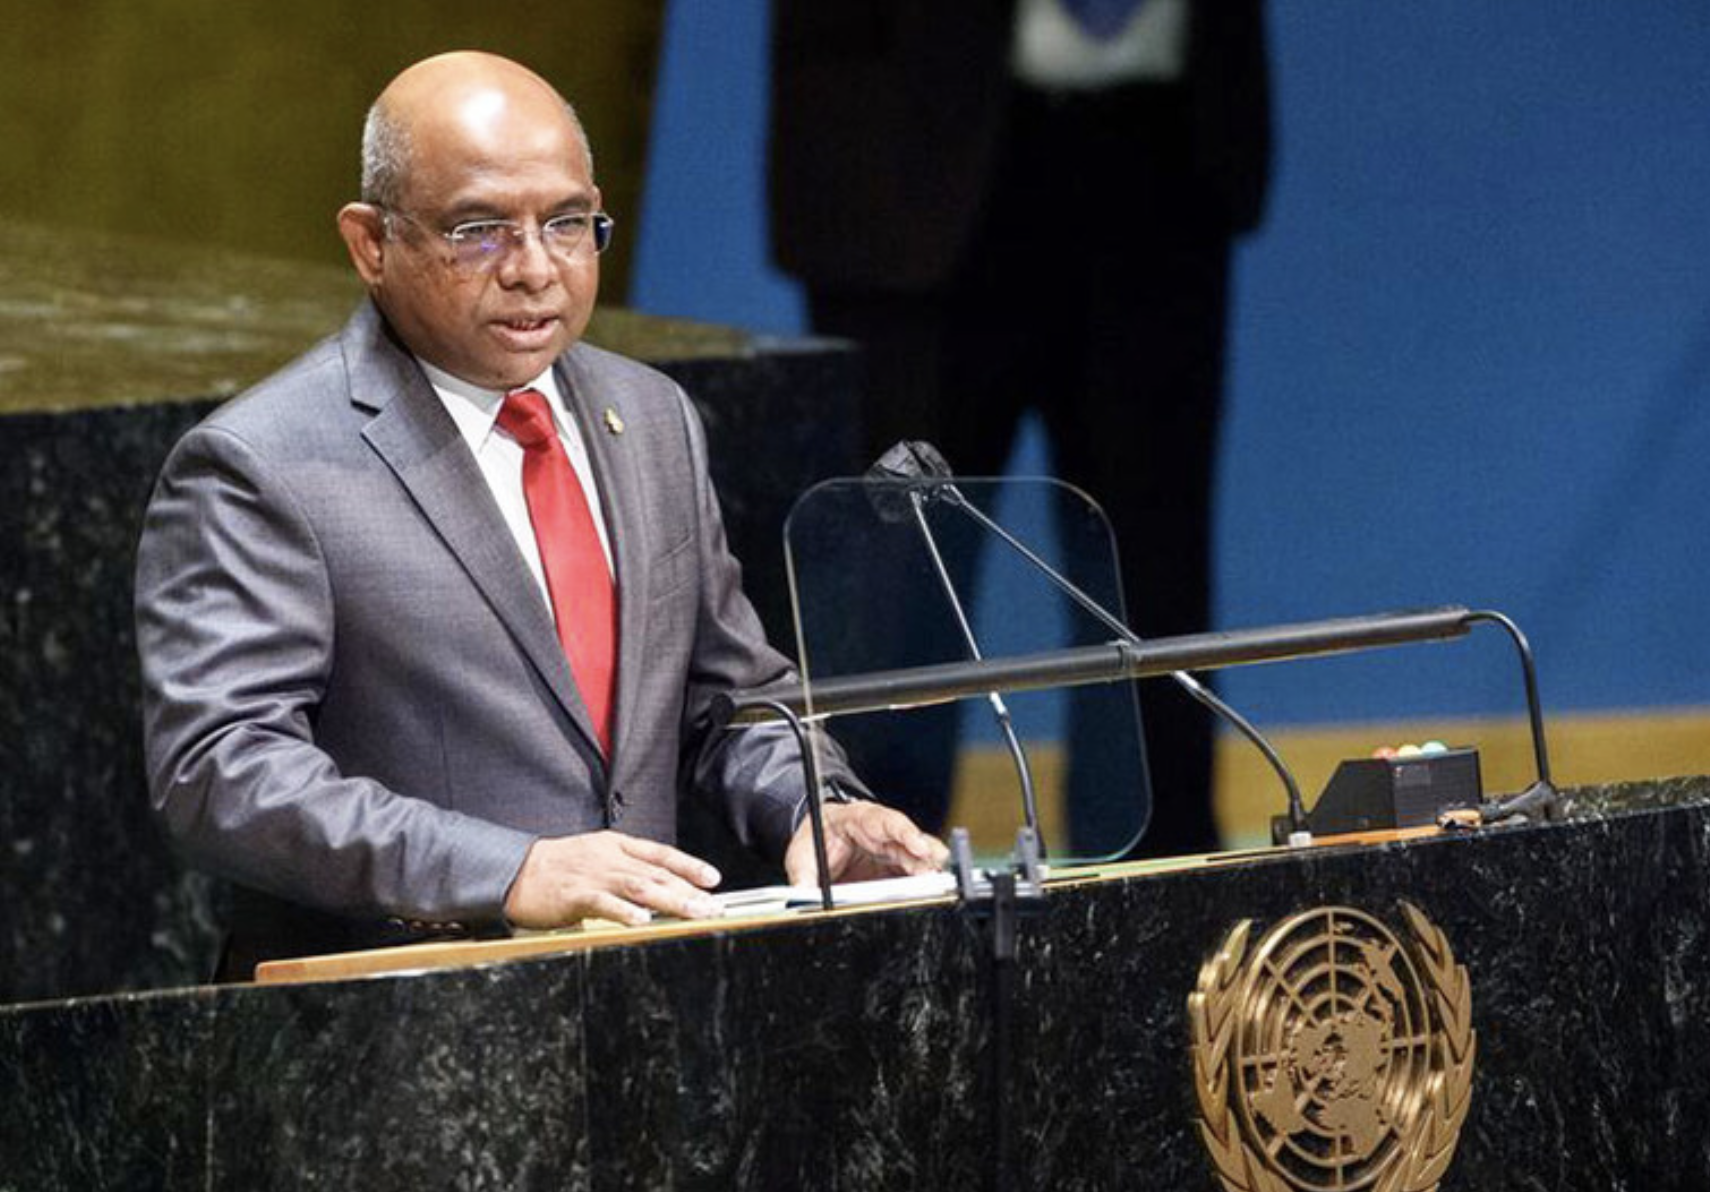 UN elects new President of the General Assembly 76th Session